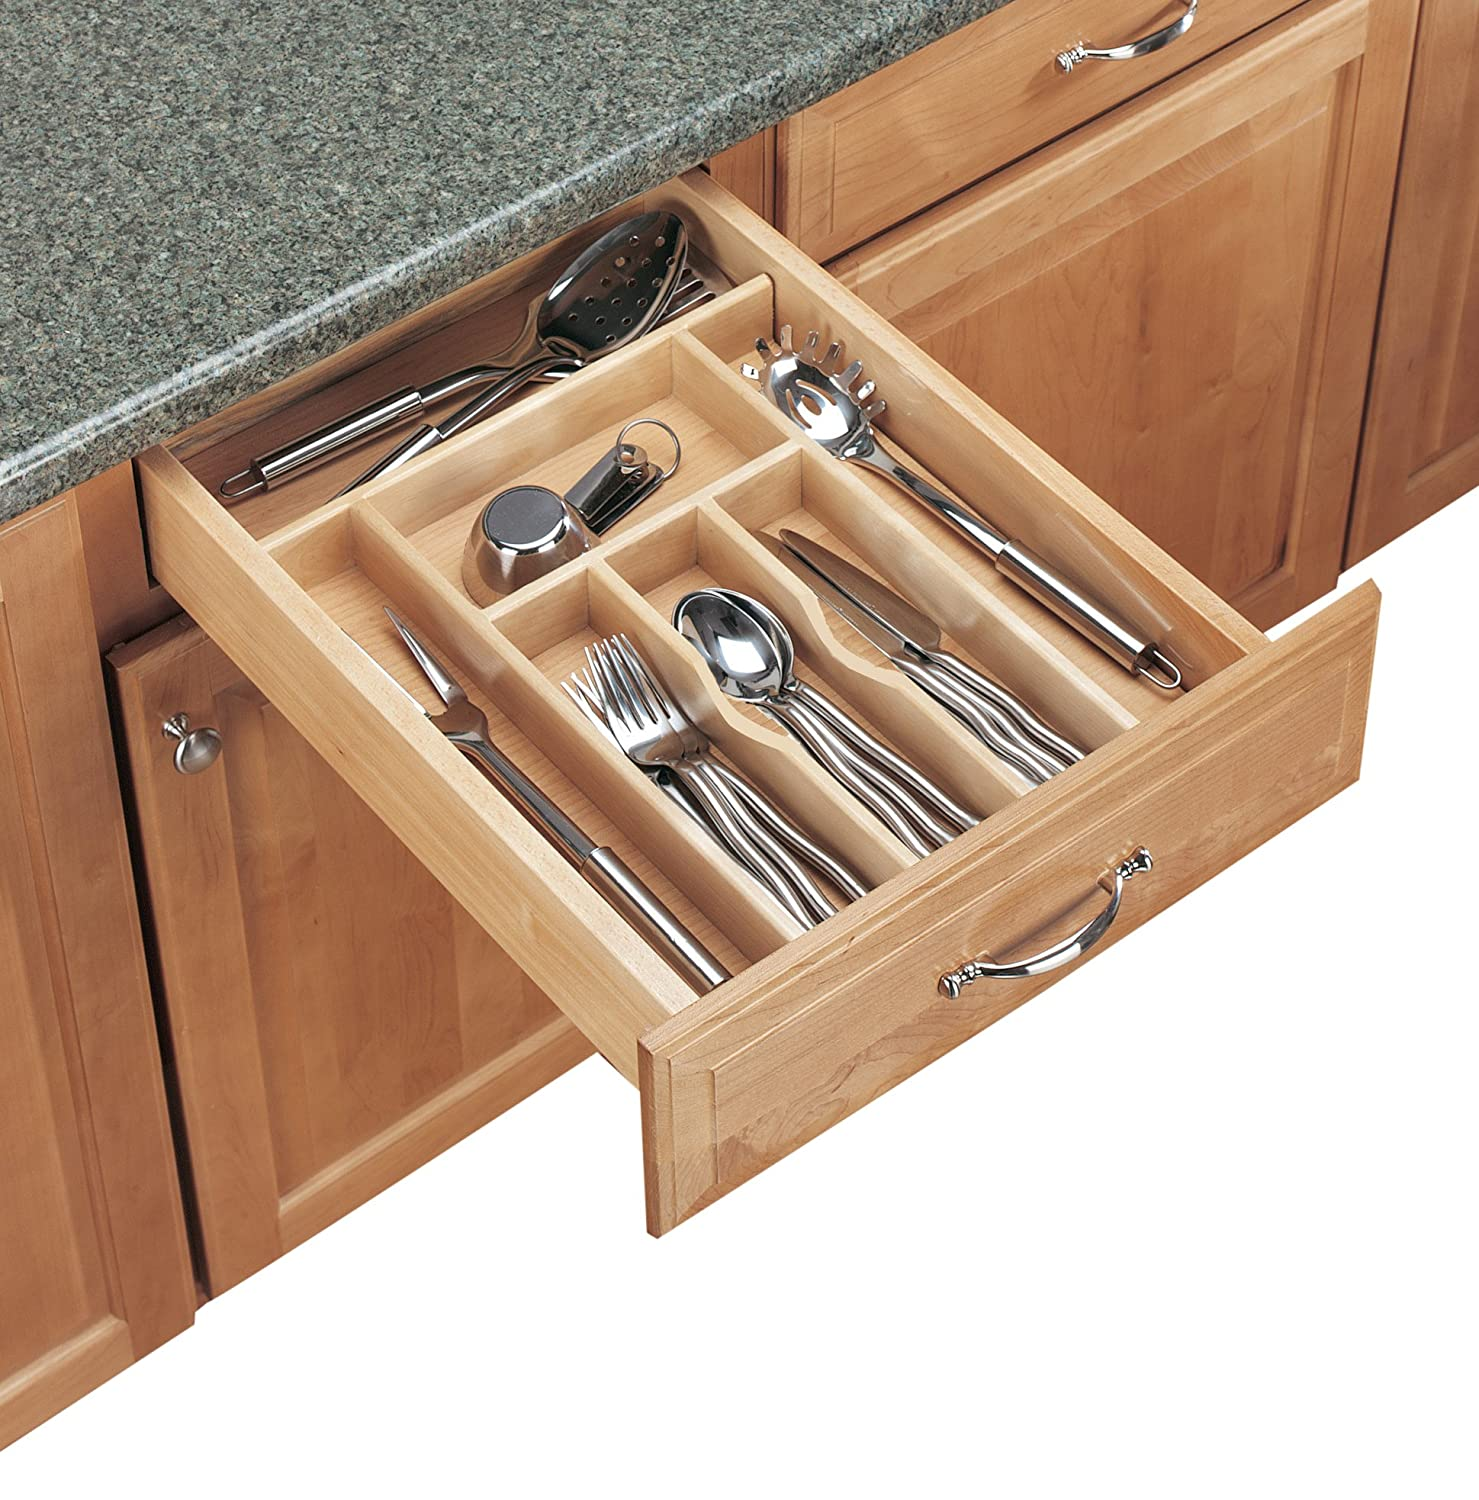 drawer youtube kitchen watch flatware diy organizer utensil